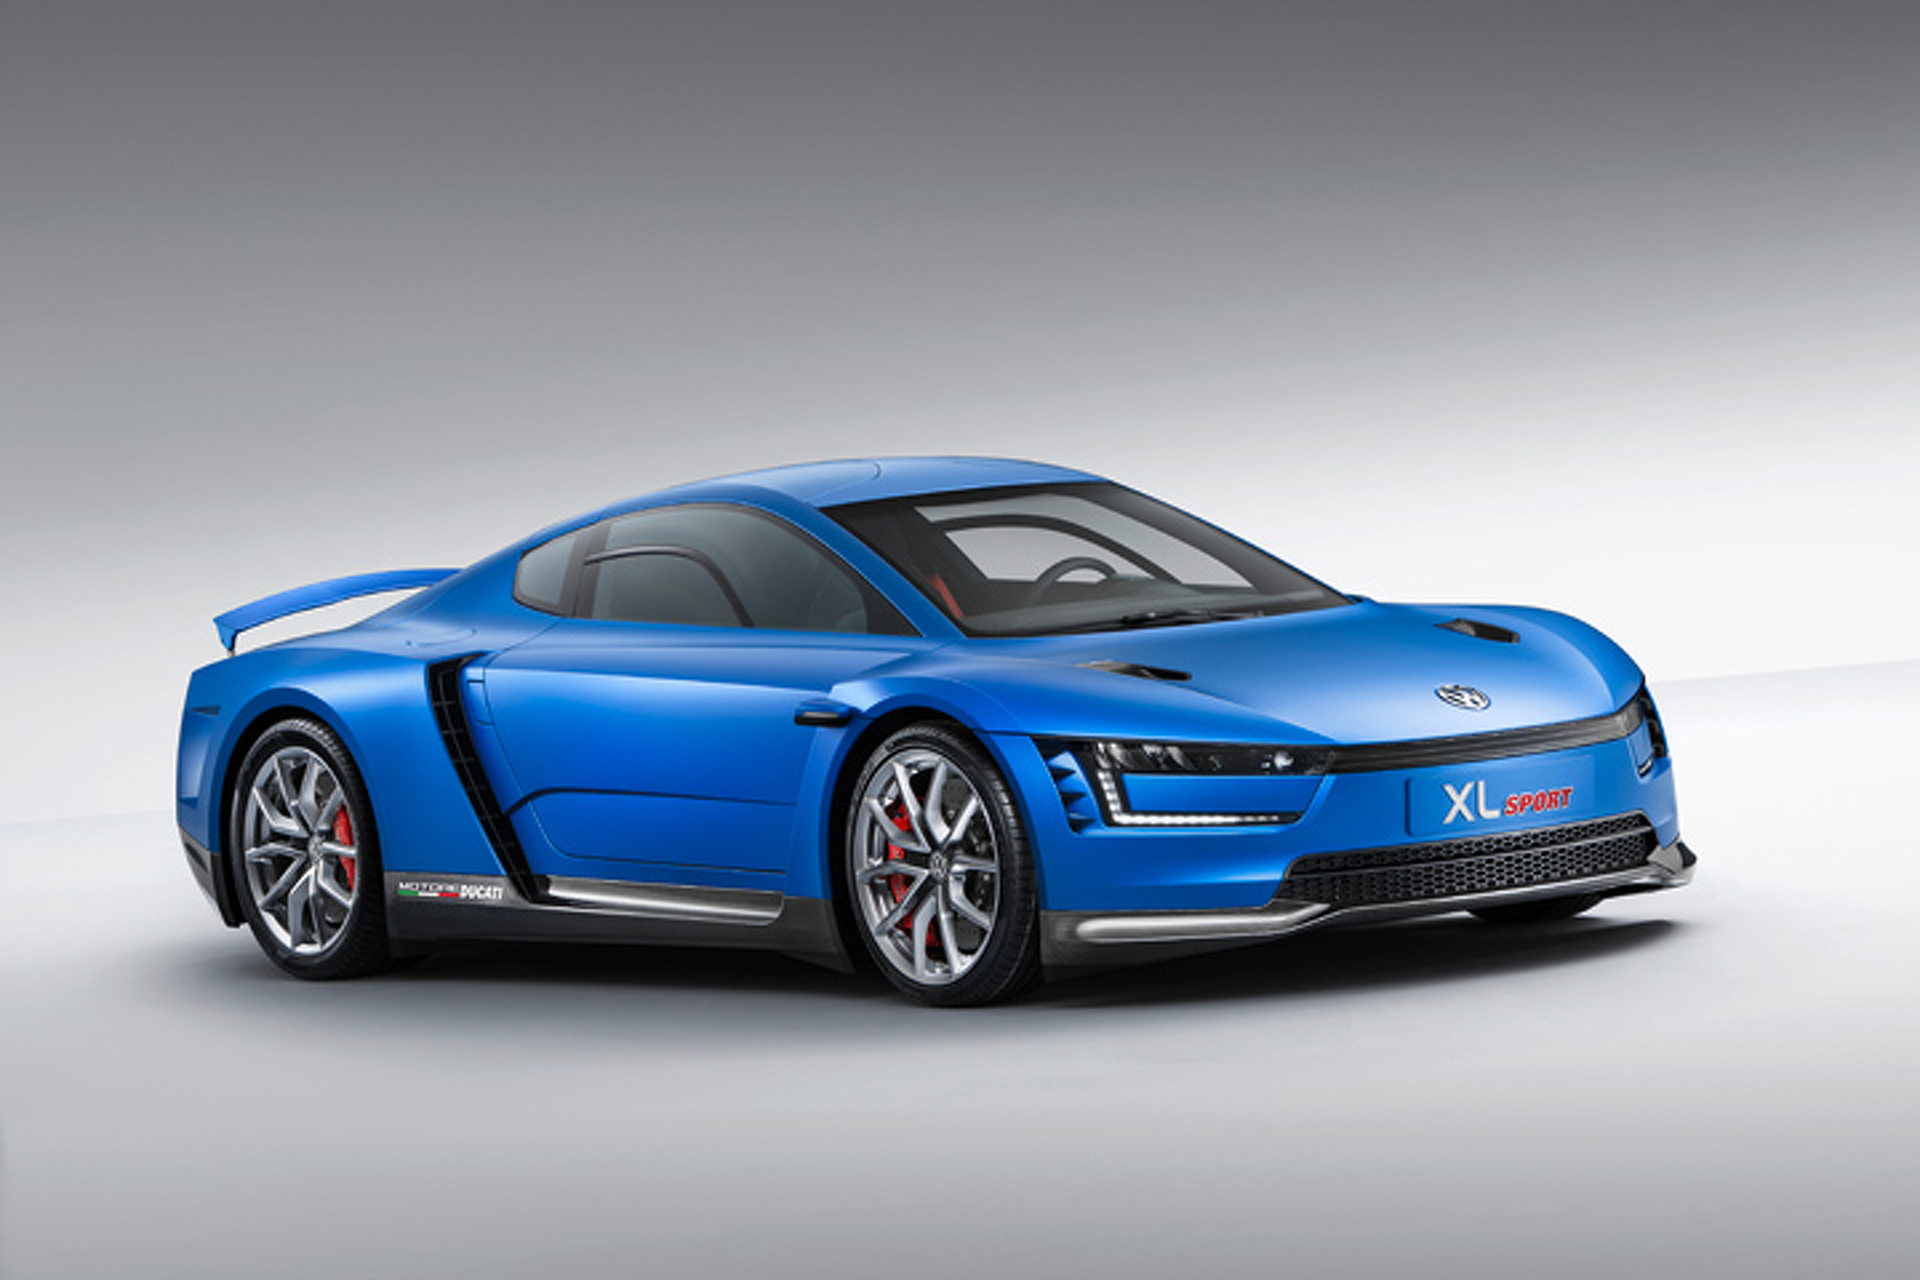 2014 Paris Motor Show's 6 Boldest Reveals